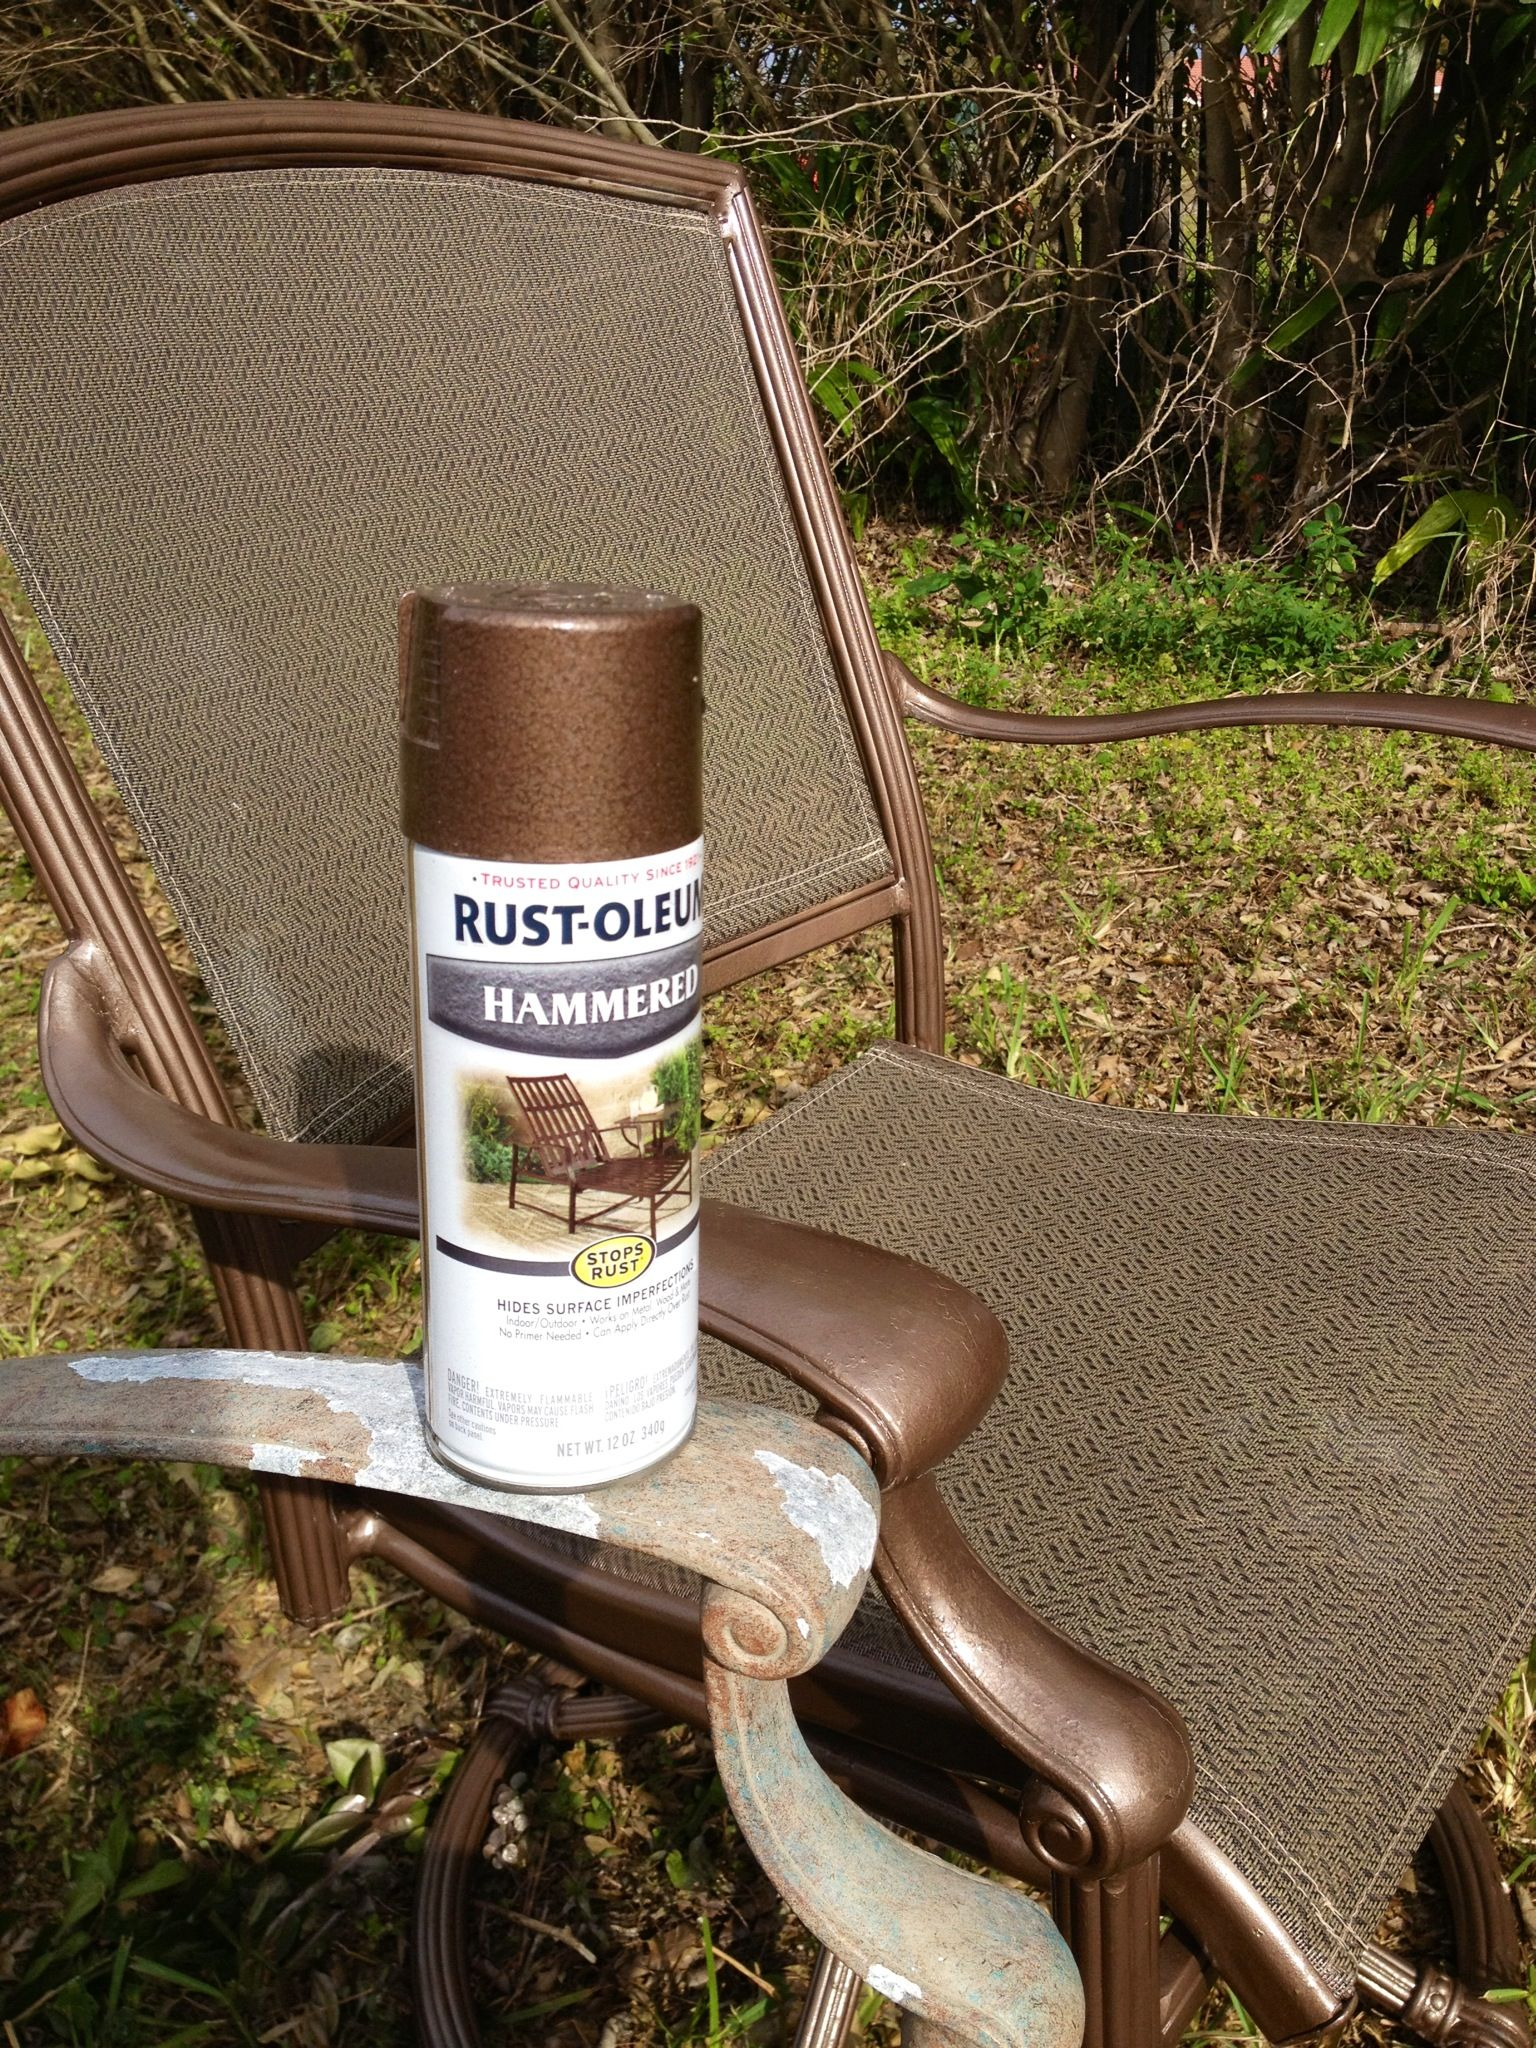 Rustoleum Hammered metallic spray paint for my upcycled ...